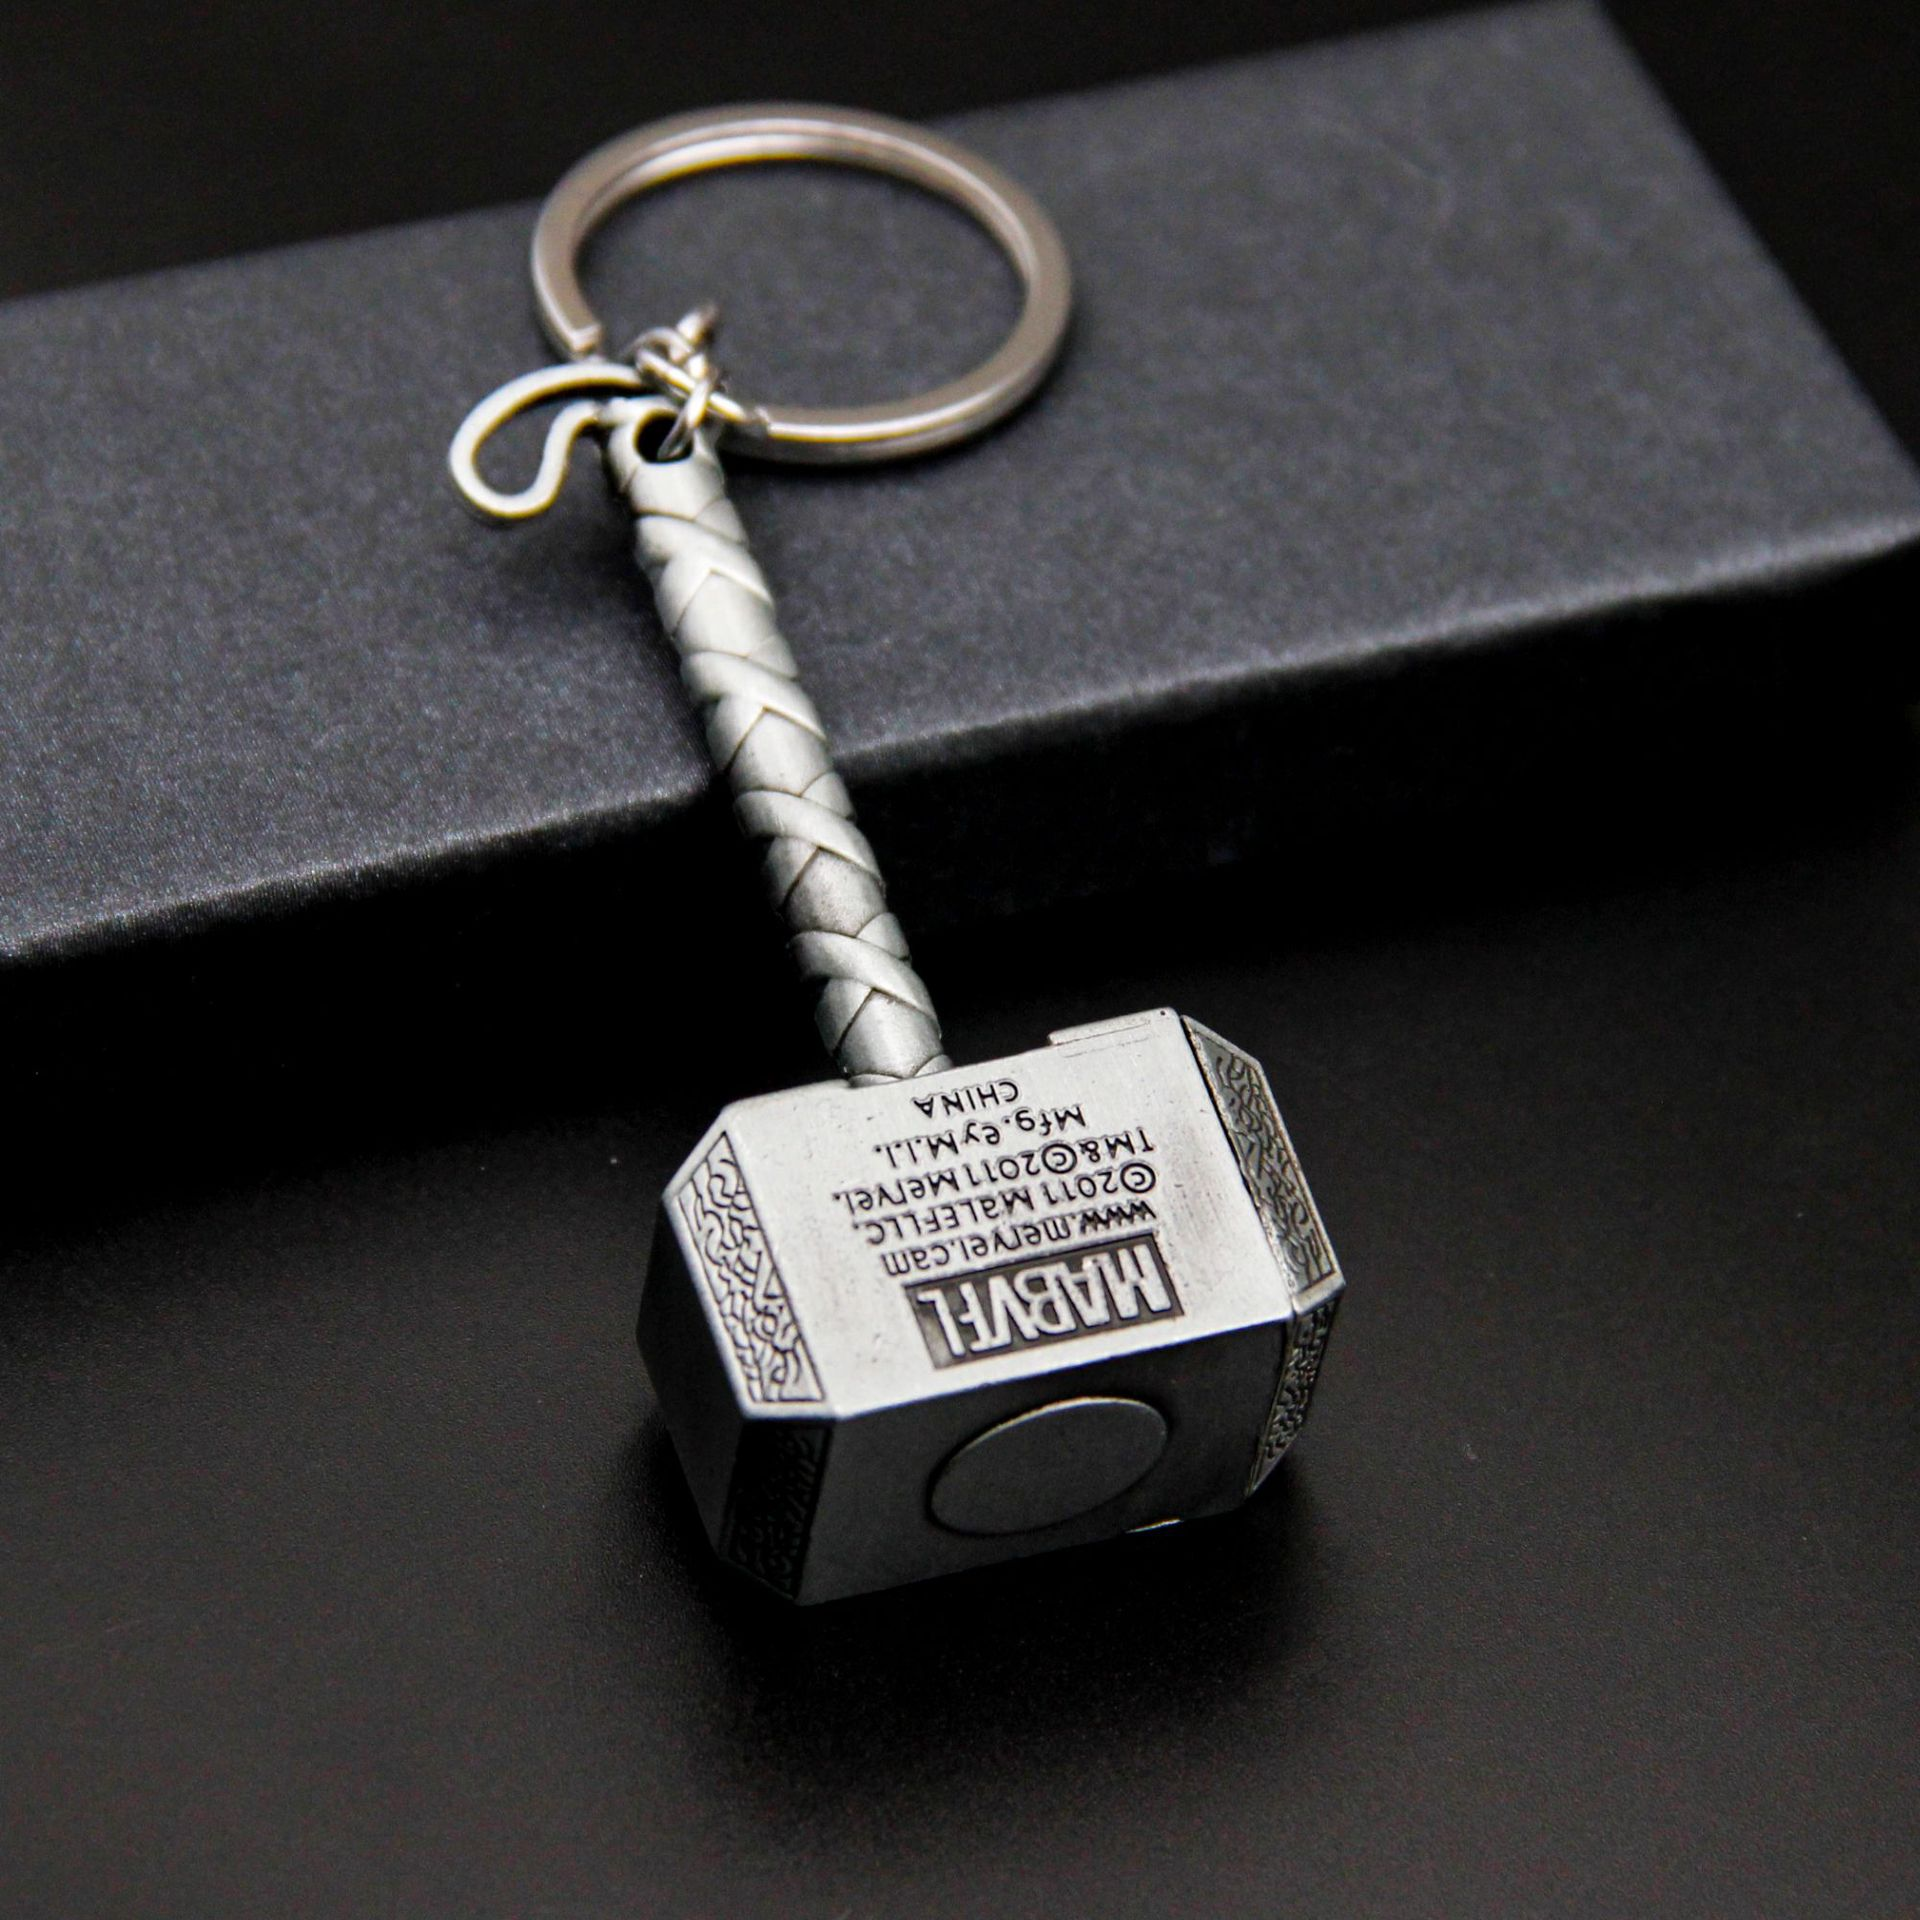 Marvel Avengers Thor 39 s Hammer Mjolnir Keychain Captain America Shield Hulk Batman Mask KeyChain Keyrings Drop Shipping Wholesale in Key Chains from Jewelry amp Accessories